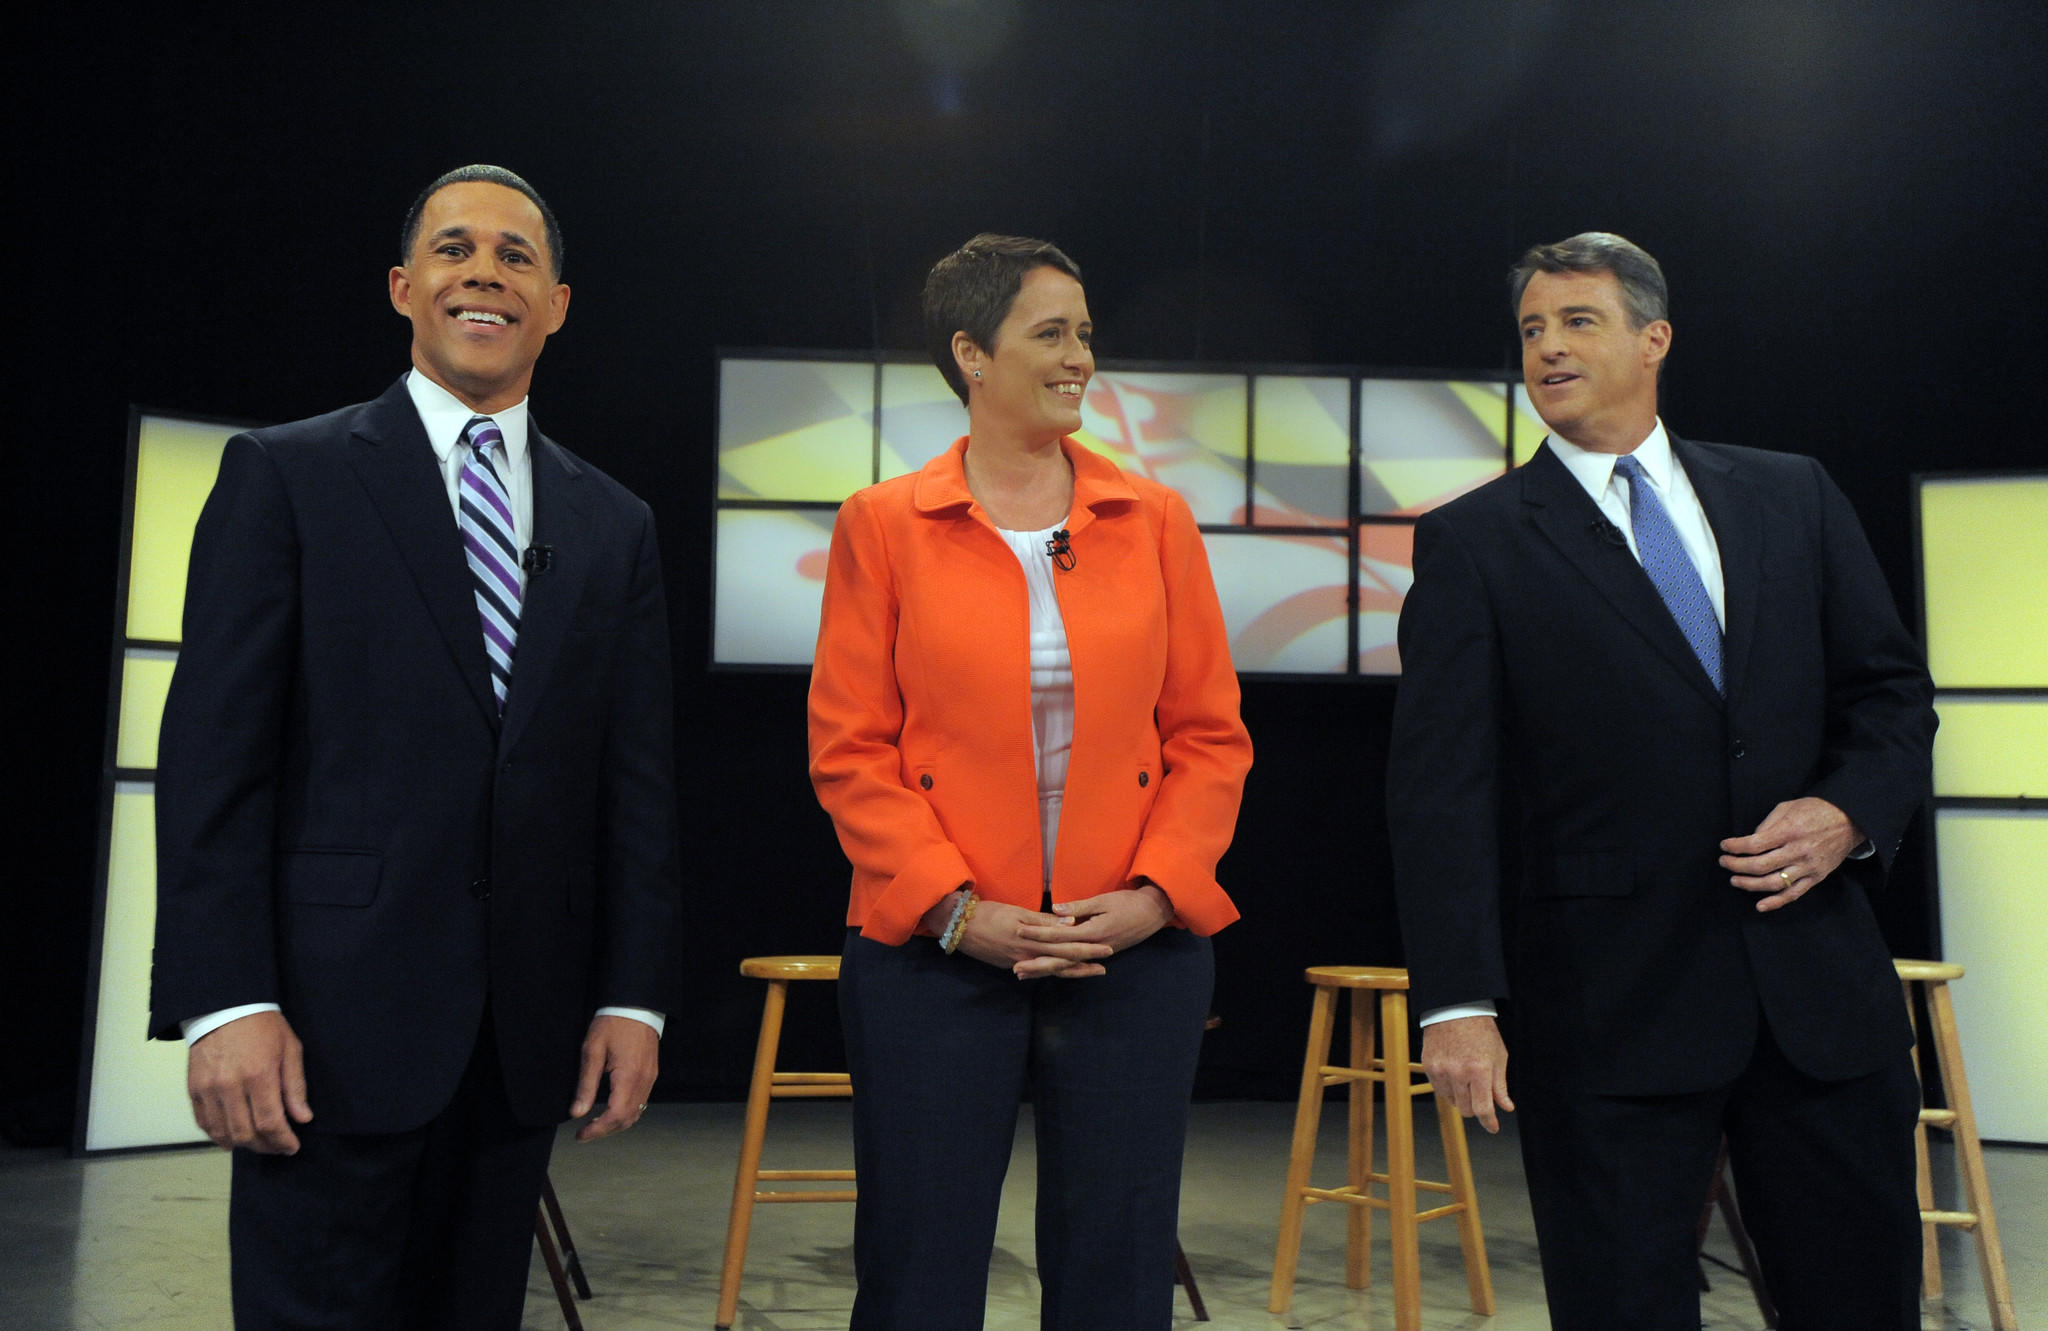 Lt. Governor Anthony Brown, from left, Del. Heather Mizeur and Attorney General Douglas F. Gansler stand together before the start of the Democratic Gubernatorial debate at Maryland Public Television studios.